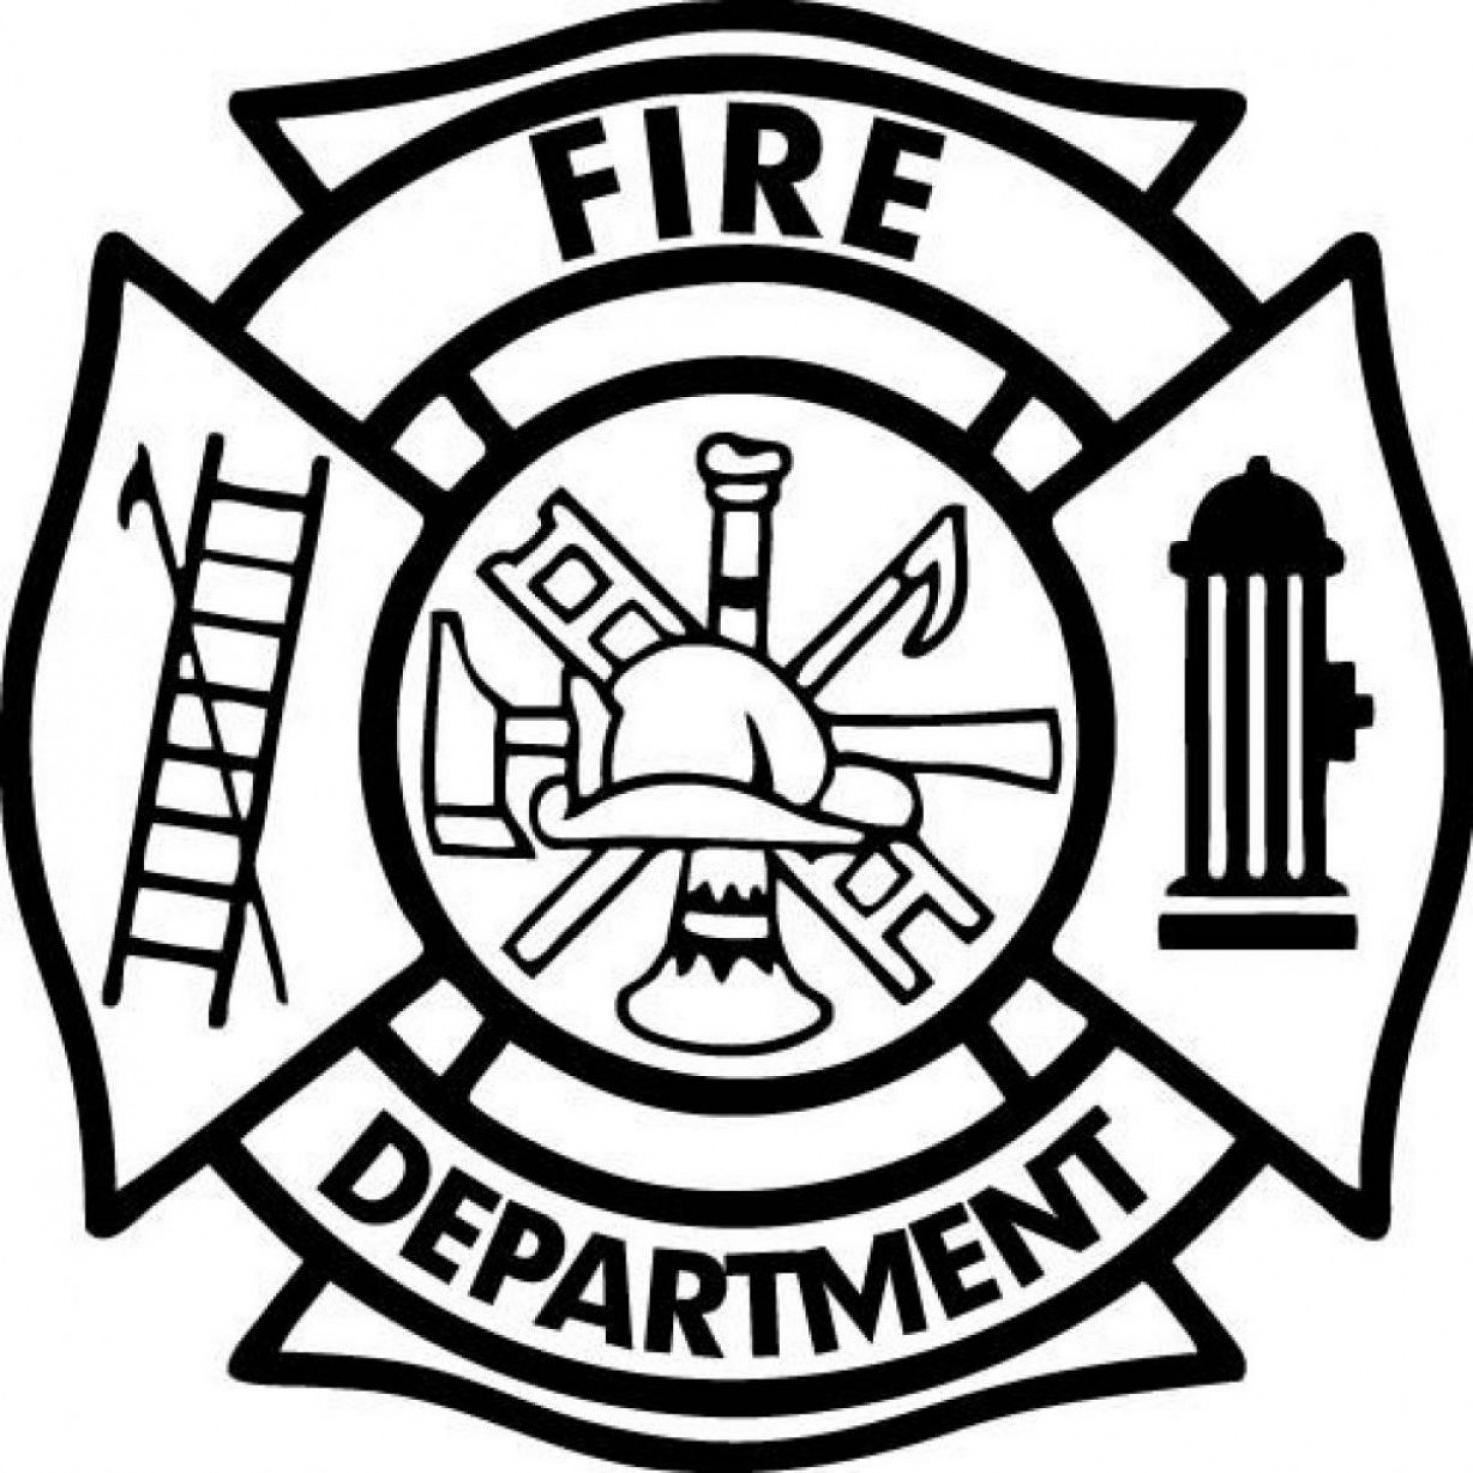 Best HD Fire Service Maltese Cross Vector Images » Free.